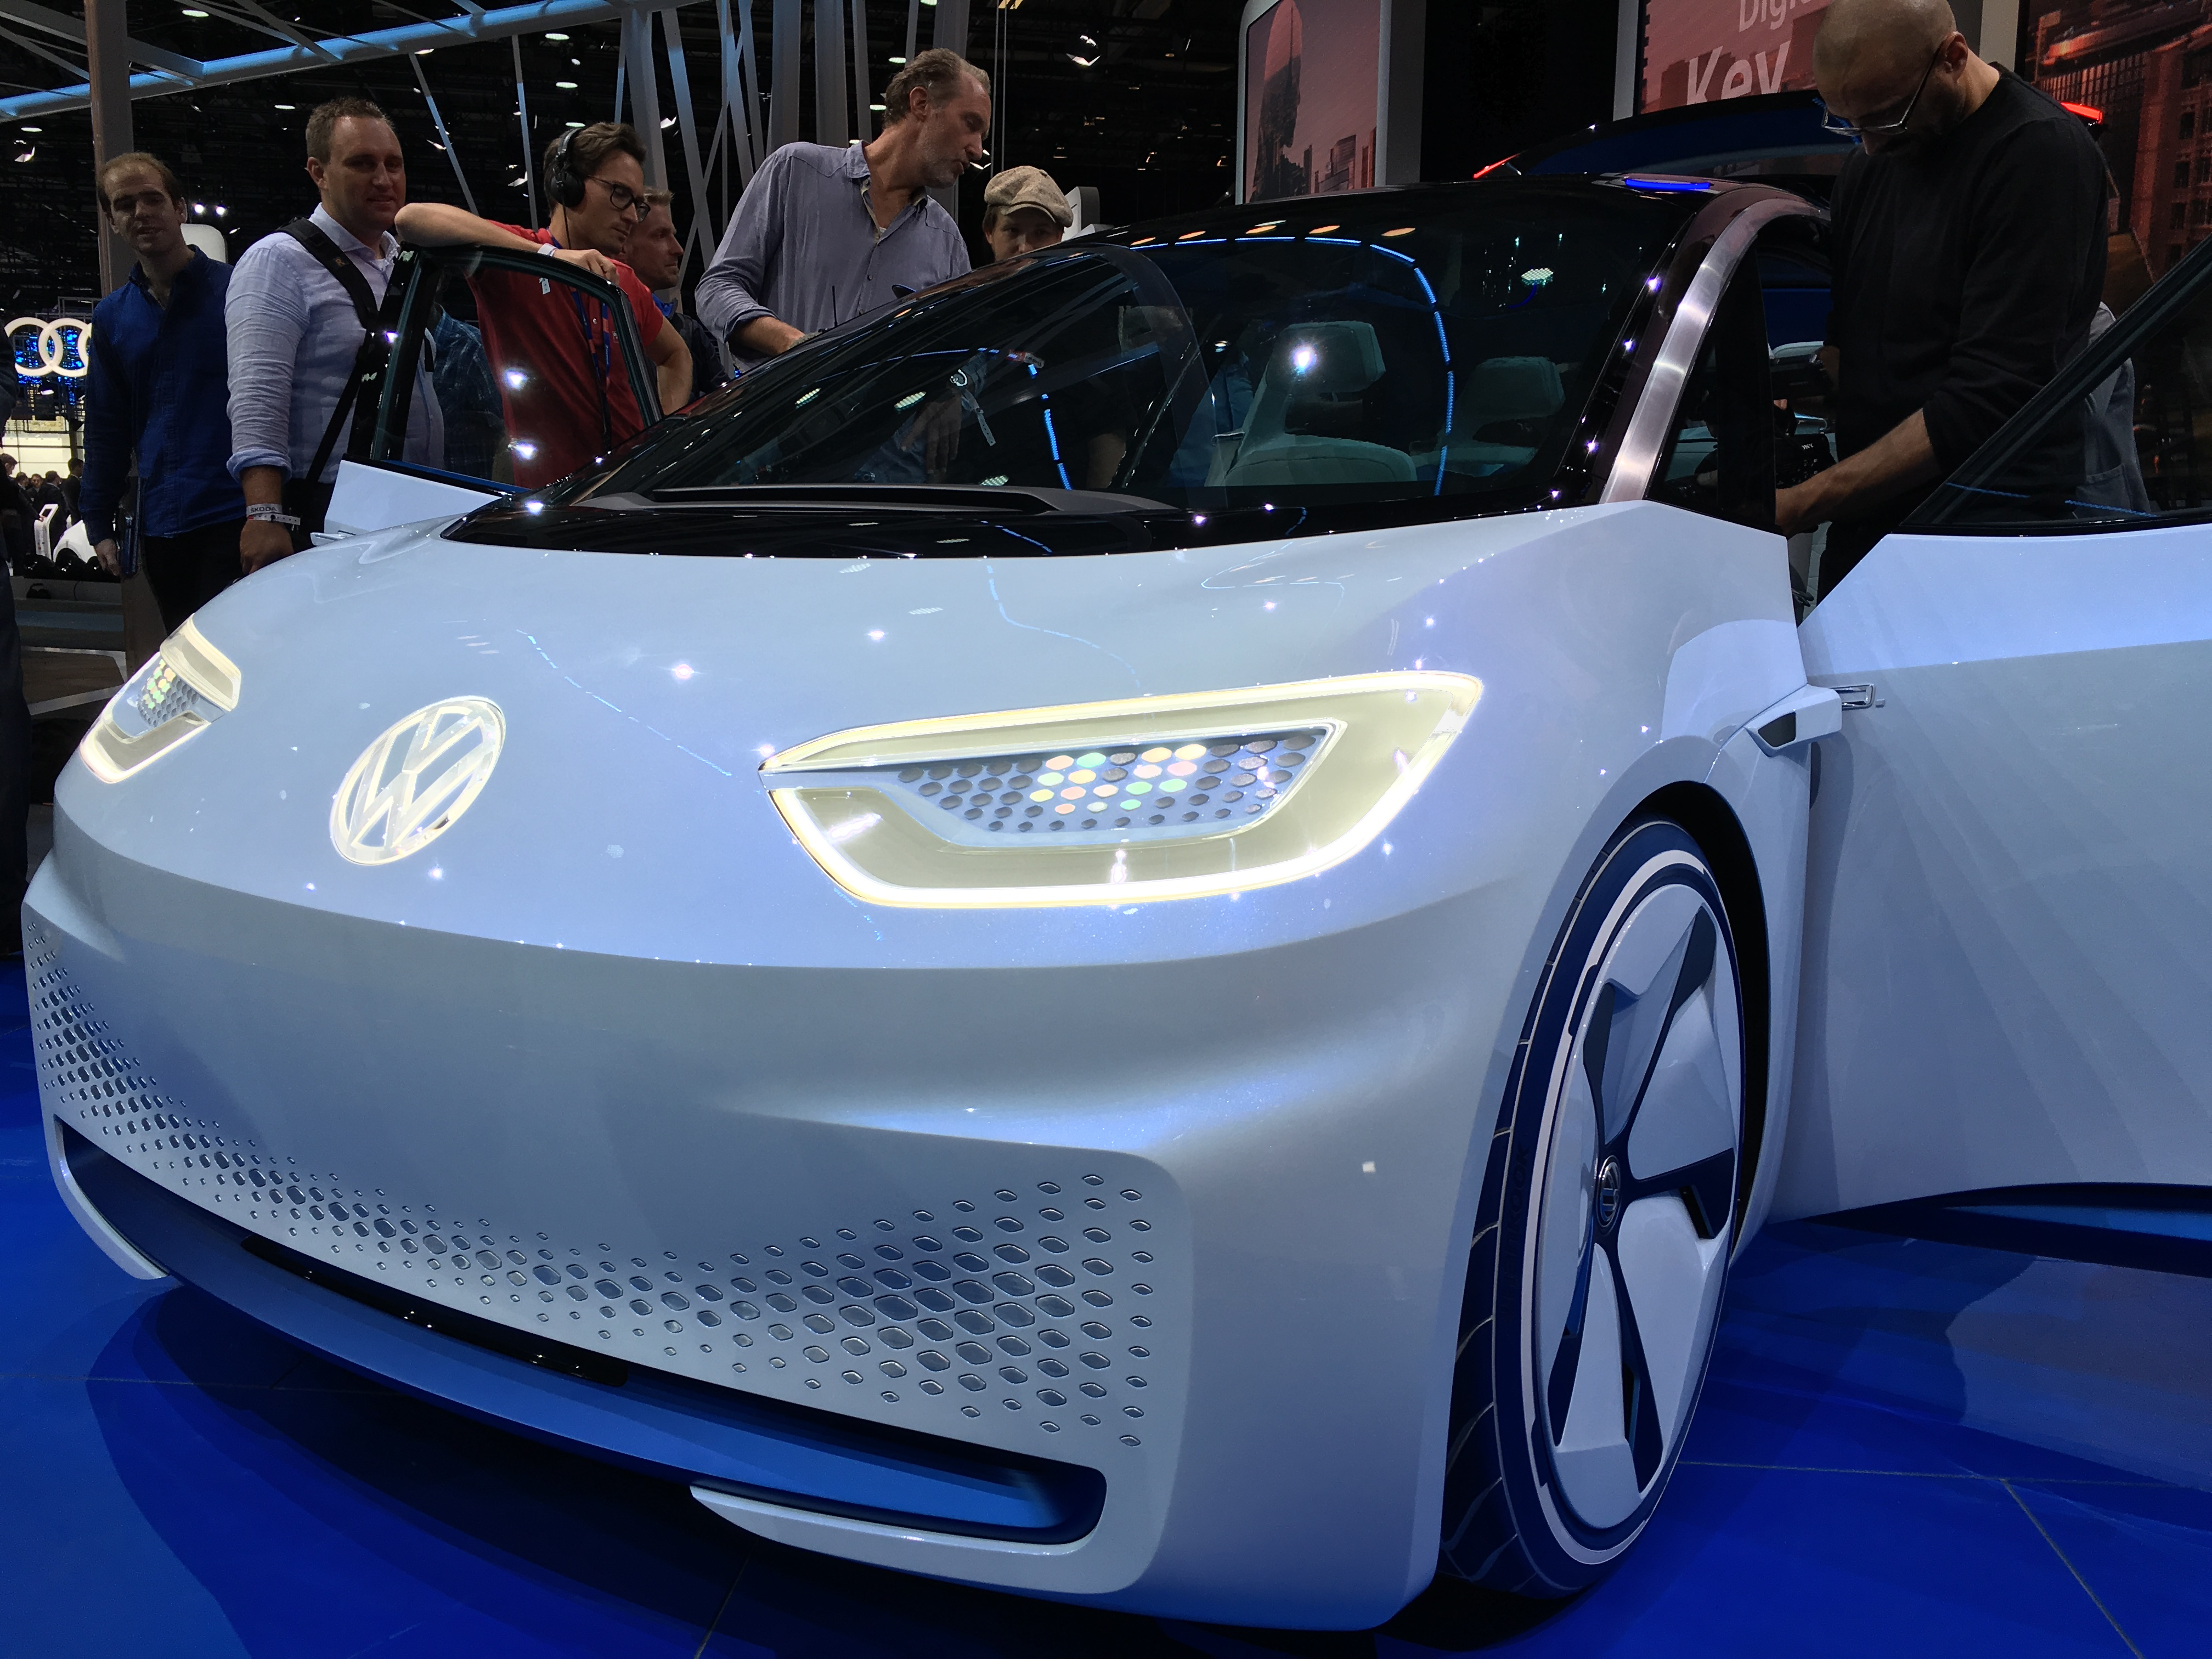 Volkswagen Budd E Electric Car K X likewise Volkswagen Jetta   Rodas Aro X further Maxresdefault together with Api Model Year Image also Volkswagen Jetta. on 2016 volkswagen jetta